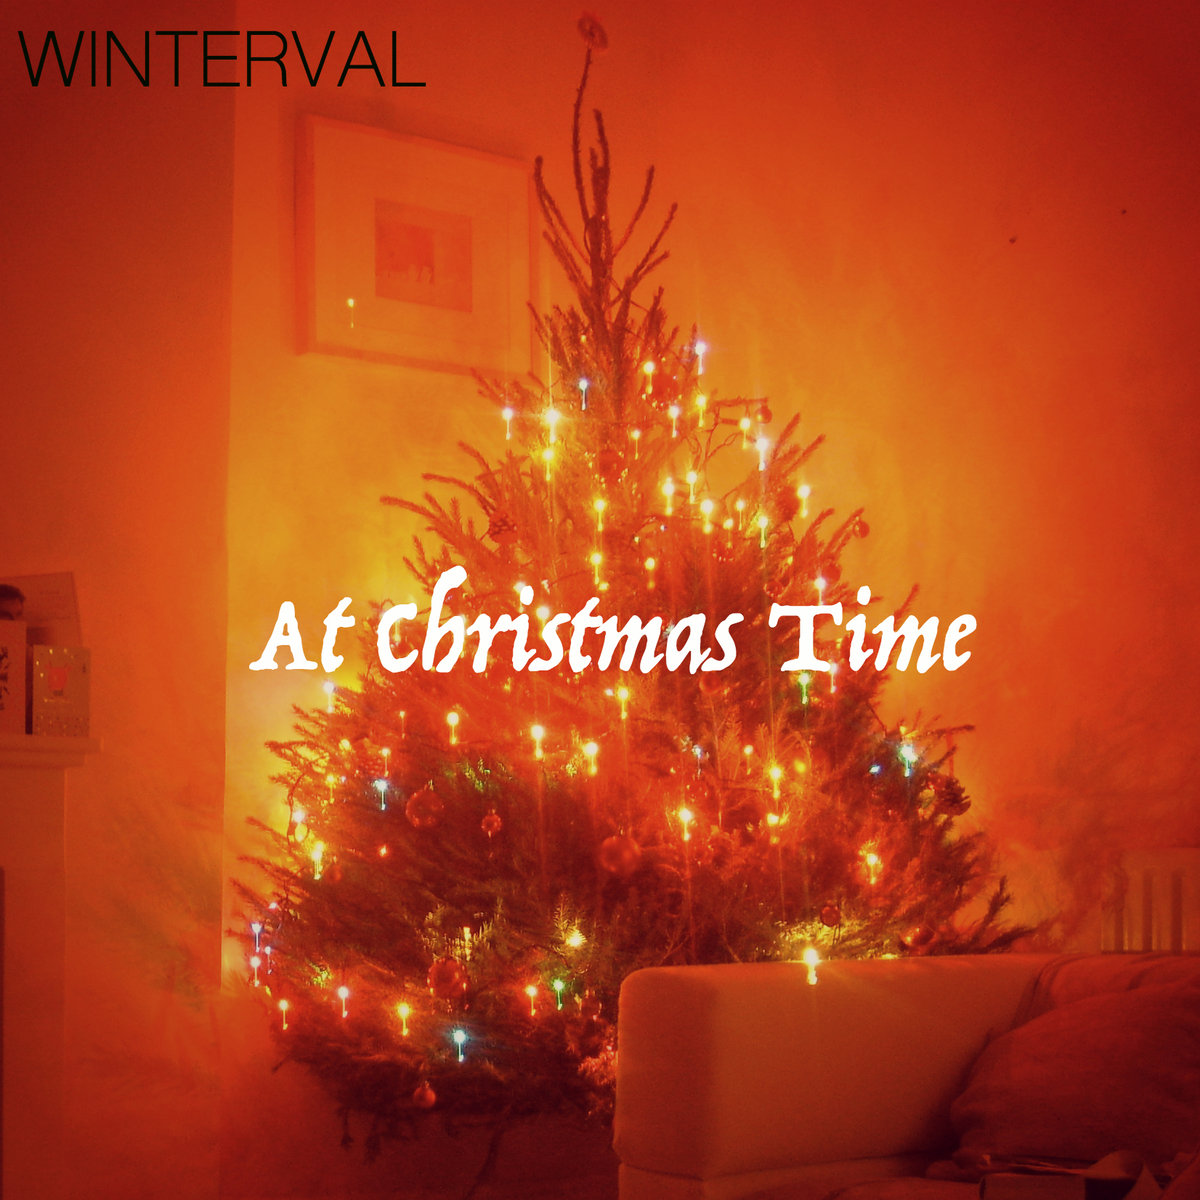 Winterval - At Christmas Time